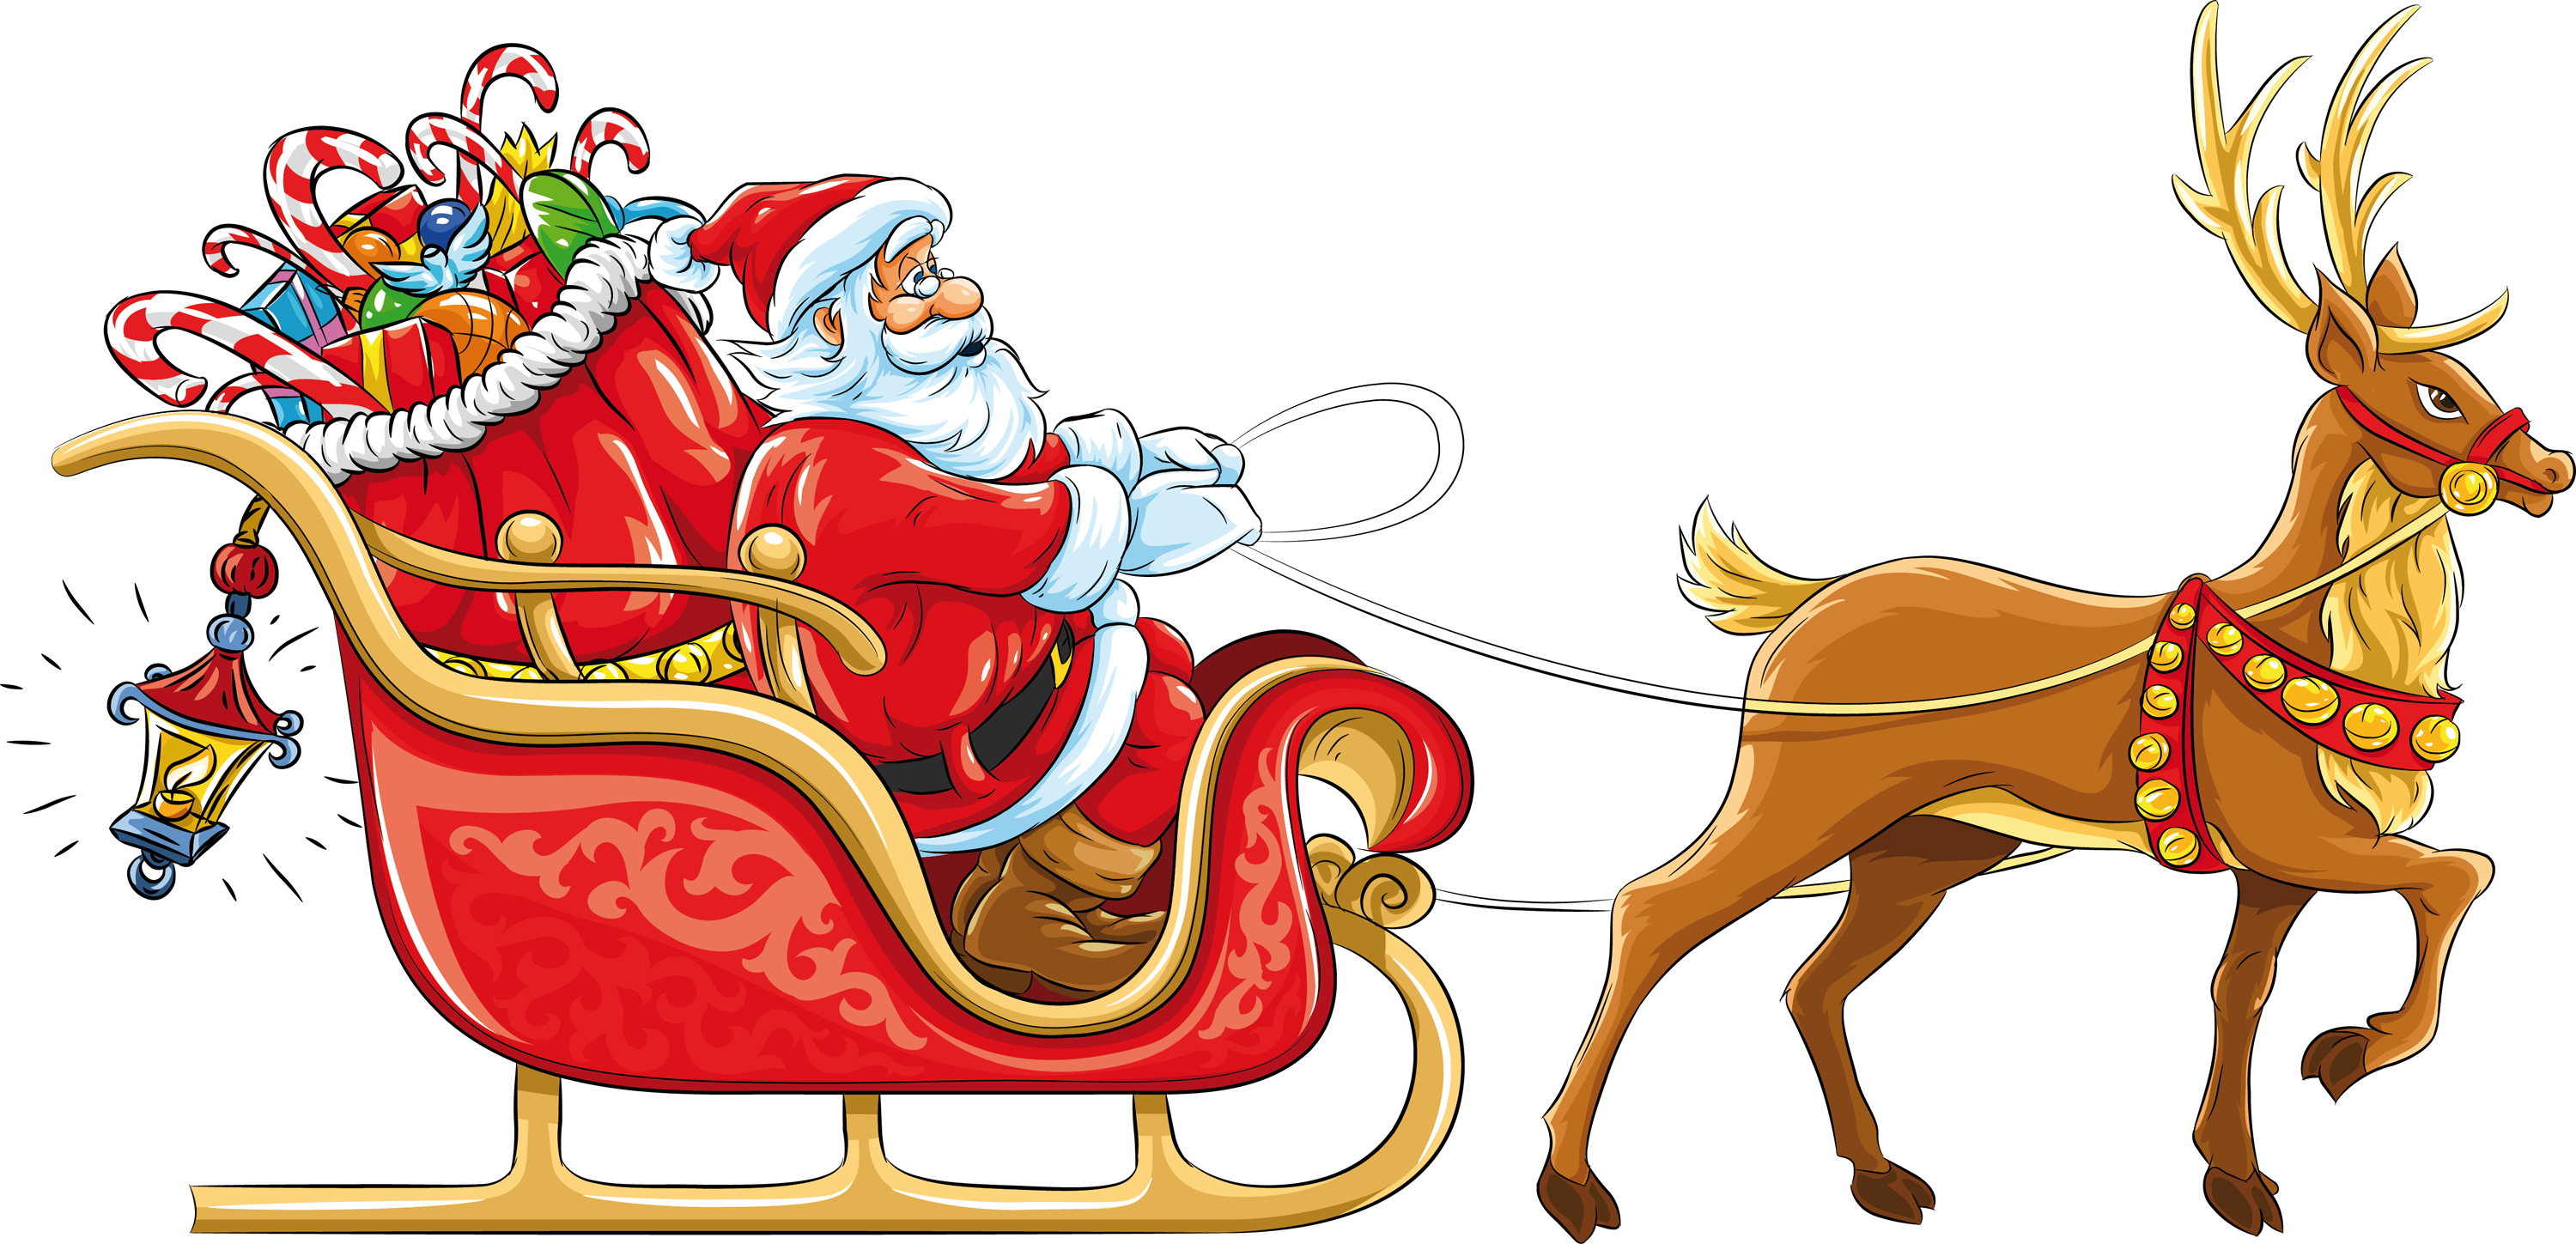 Christmas song clipart image royalty free Santa sleigh PNG images free download image royalty free